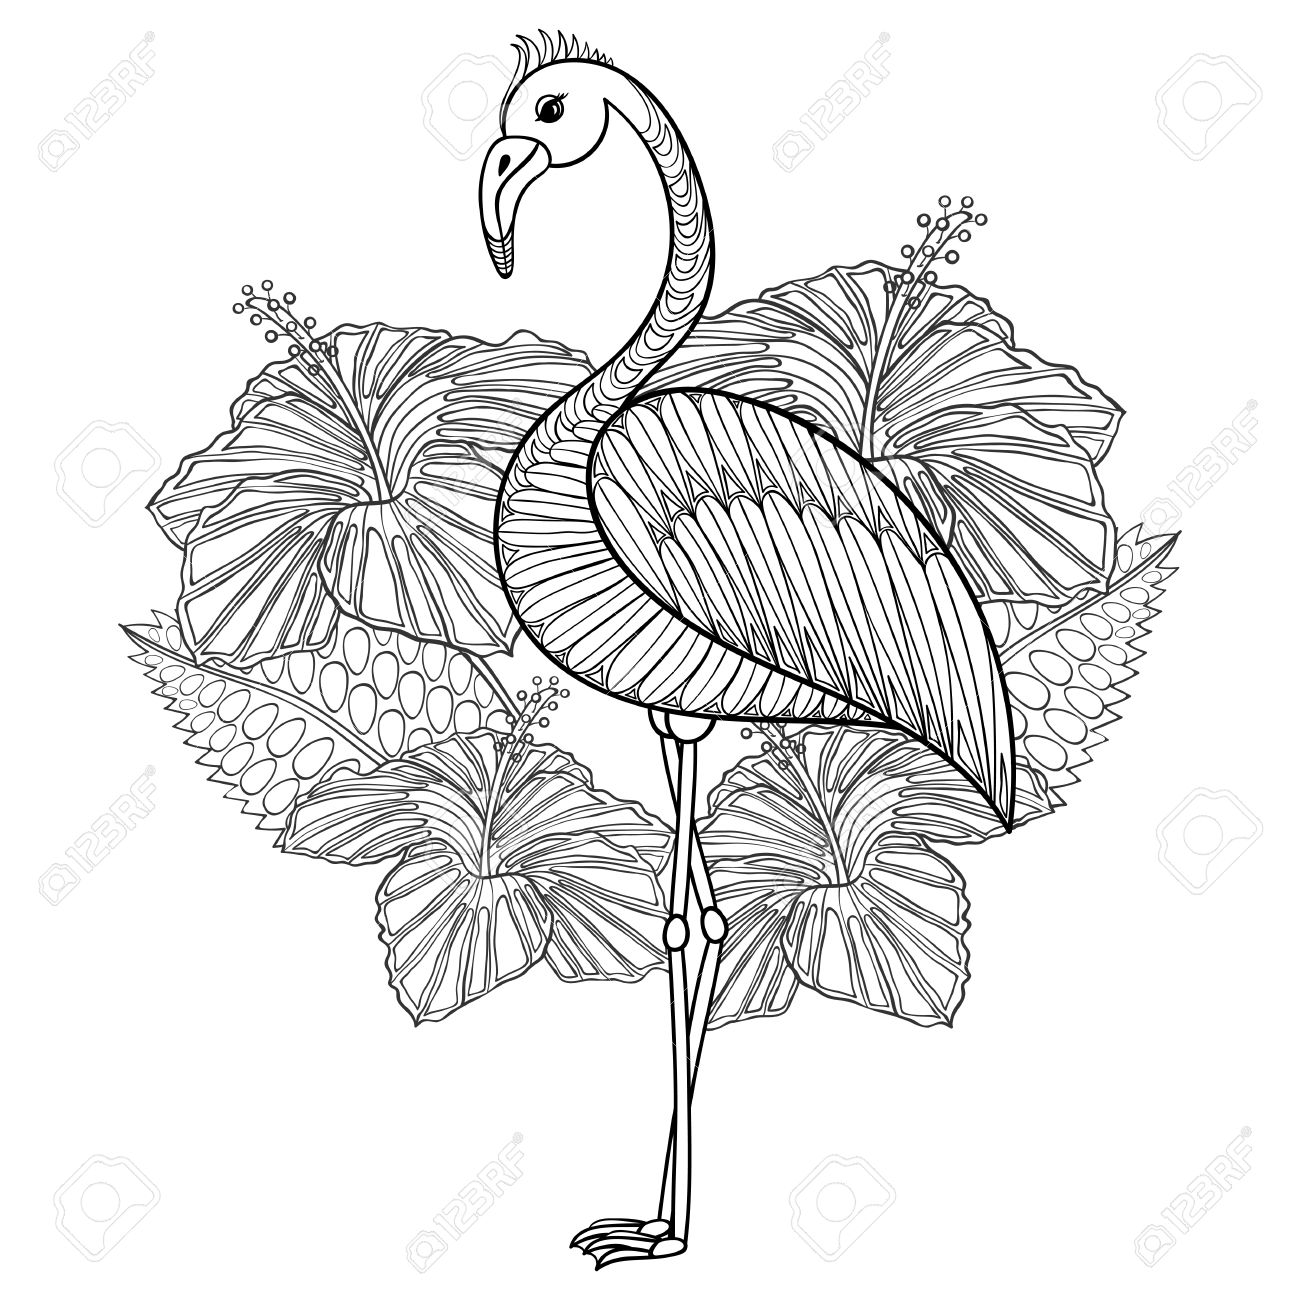 Coloring sheets for adults flamingo - Coloring Page With Flamingo In Hibiskus Zentangle Illustartion For Adult Coloring Books Or Tattoos With